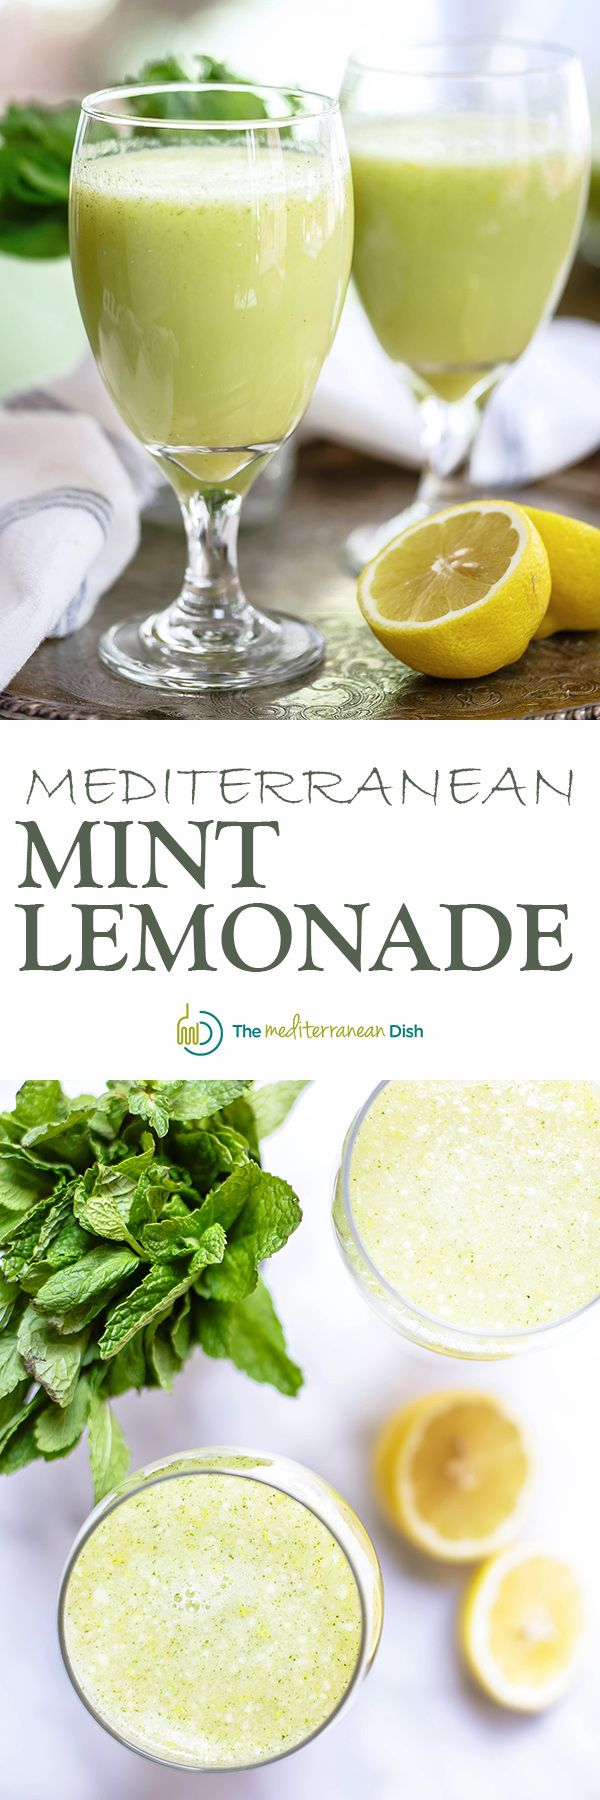 Mediterranean-Style Mint Lemonade | The Mediterranean Dish. An intense, frothy, perfectly refreshing homemade lemonade. There is a small trick that makes all the difference! See the recipe on TheMediterraneanDish.com